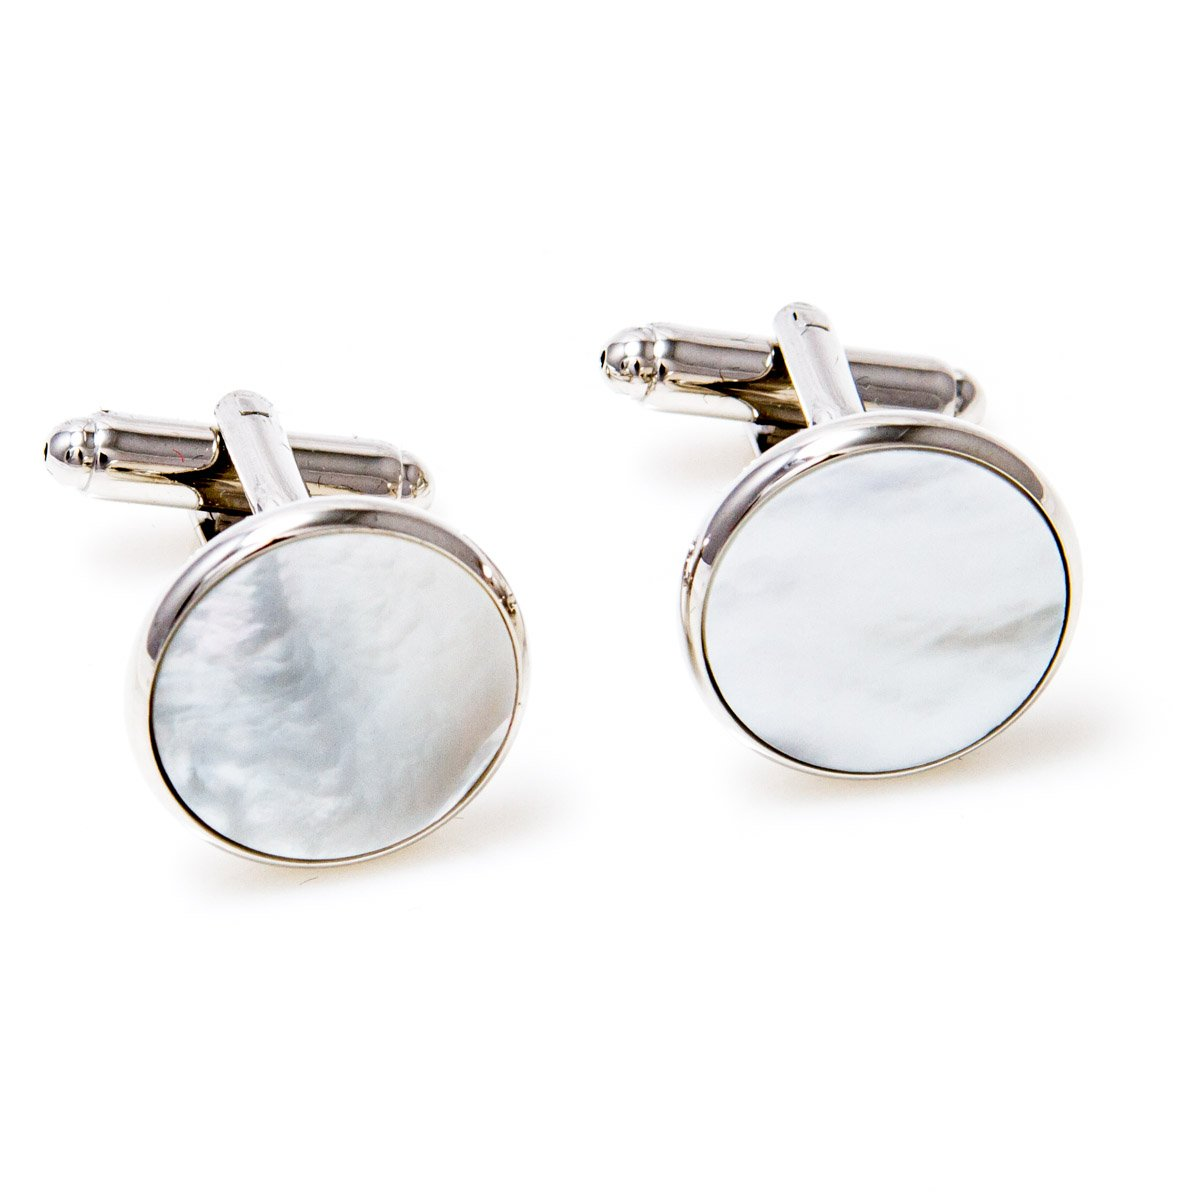 MRCUFF Mother of Pearl Cufflinks and Studs Tuxedo Set in a Presentation Gift Box & Polishing Cloth by MRCUFF (Image #3)